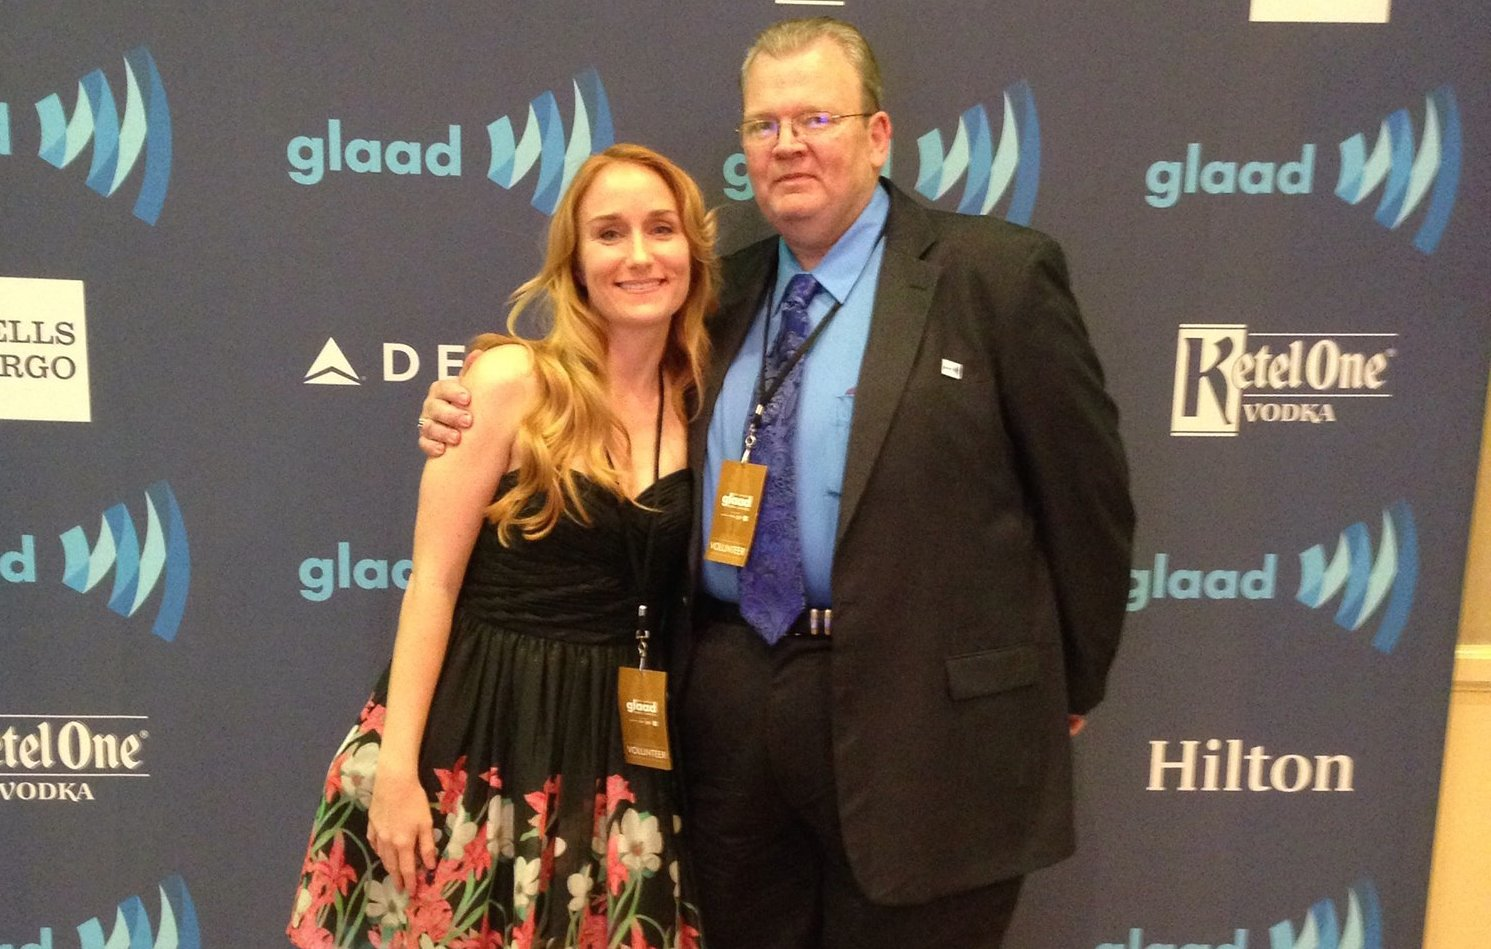 What it meant to attend the GLAAD Media Awards with my gay dad